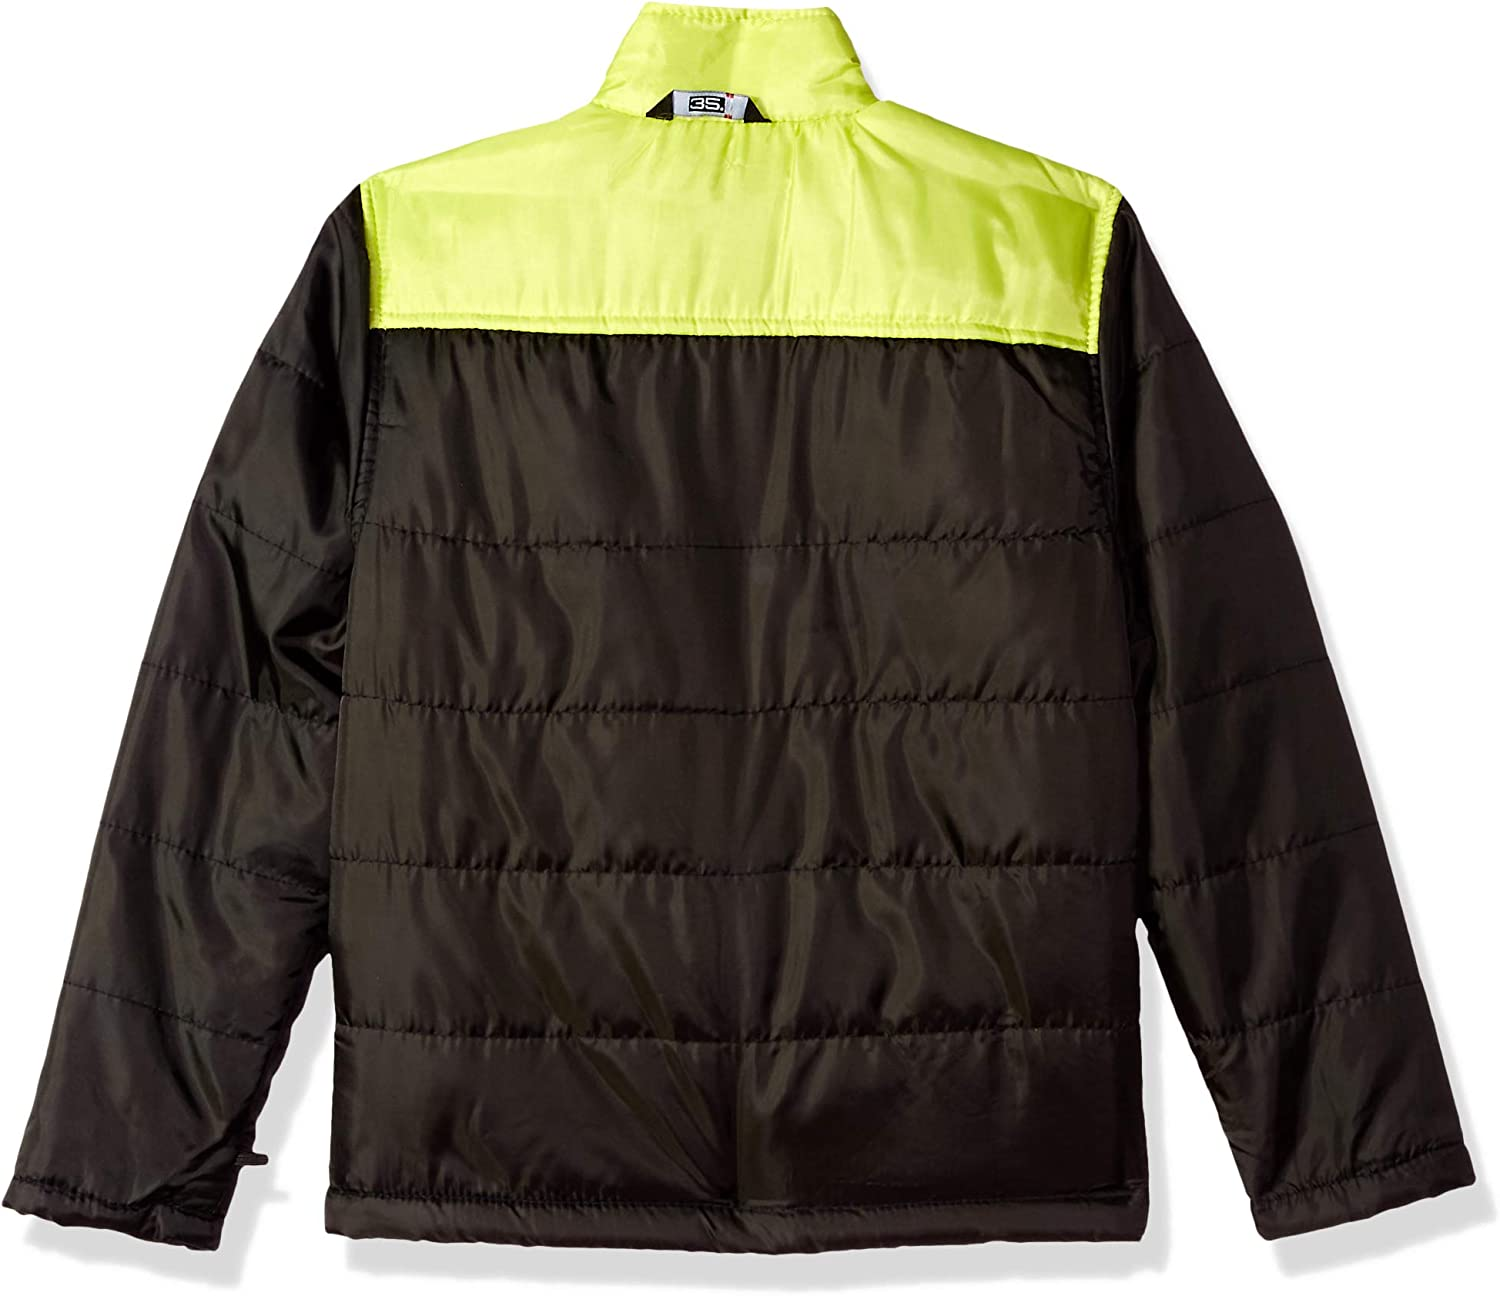 More Styles Available 32 DEGREES Weatherproof Little Boys Outerwear Jacket